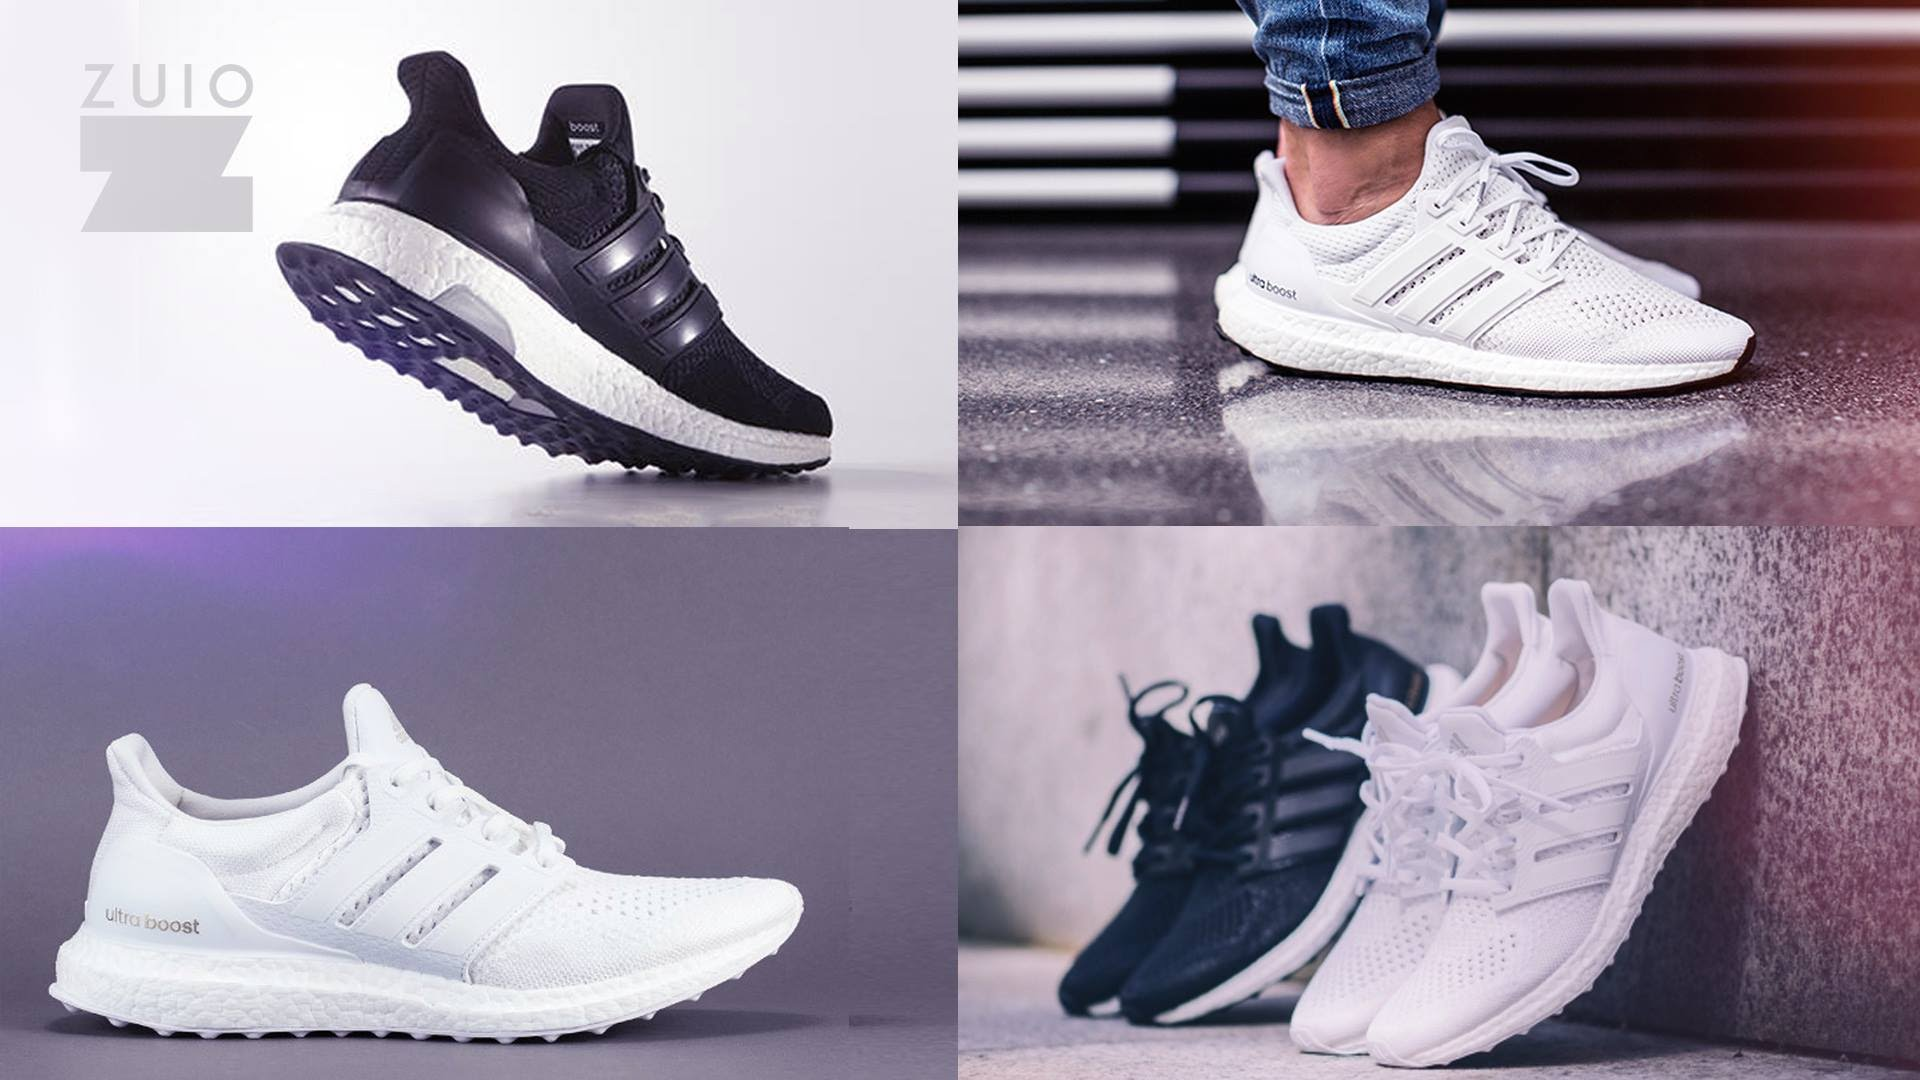 Adidas Ultra Boost 1.0 All White Key City Pack